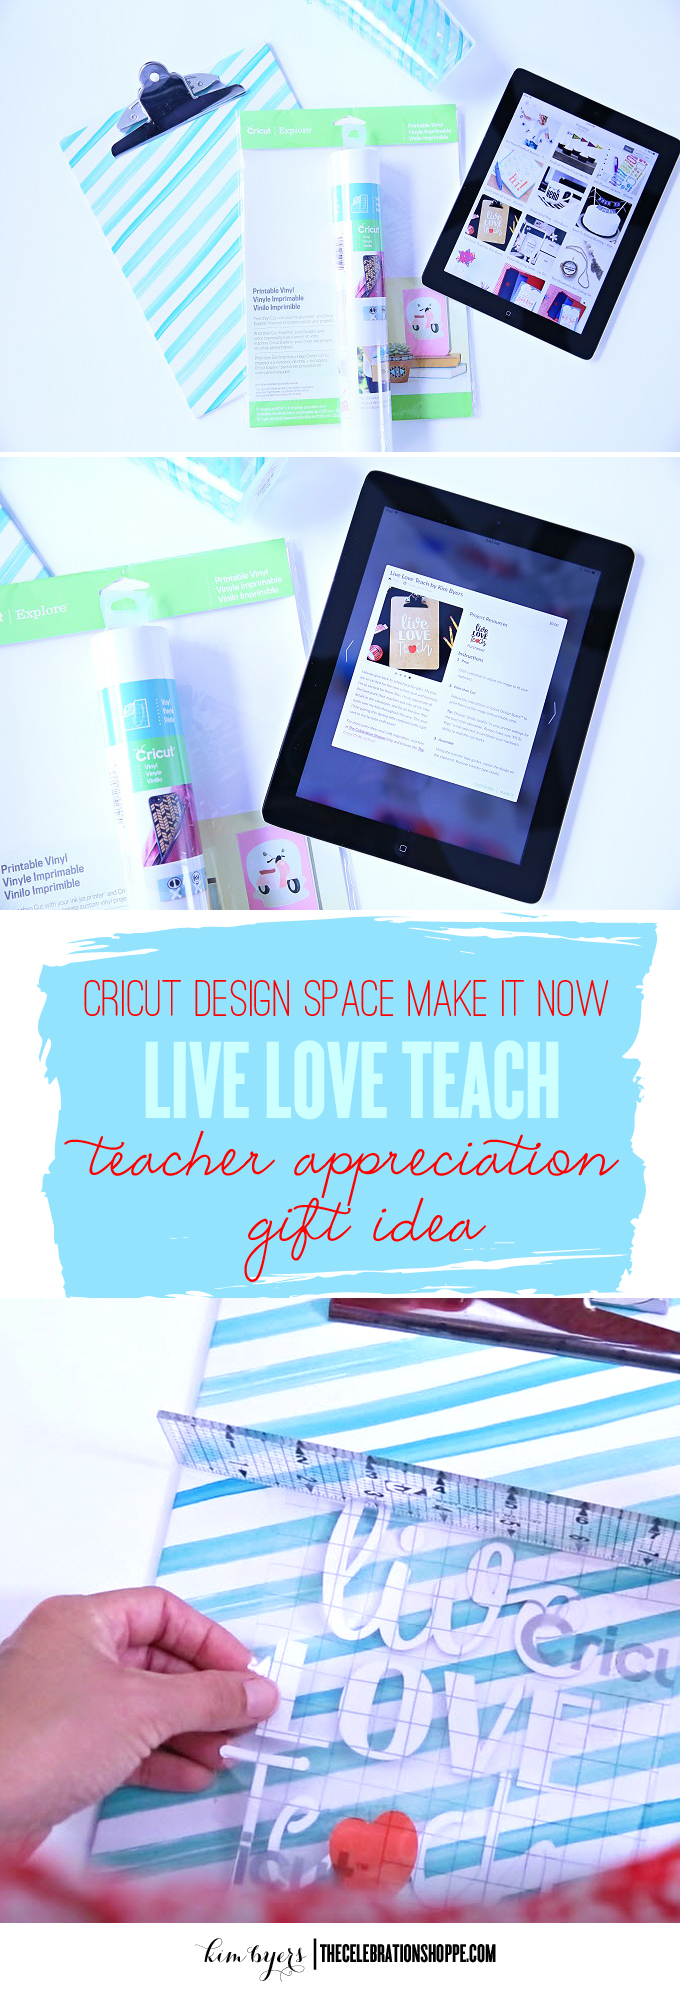 Teacher Appreciation Cricut Craft | Kim Byers